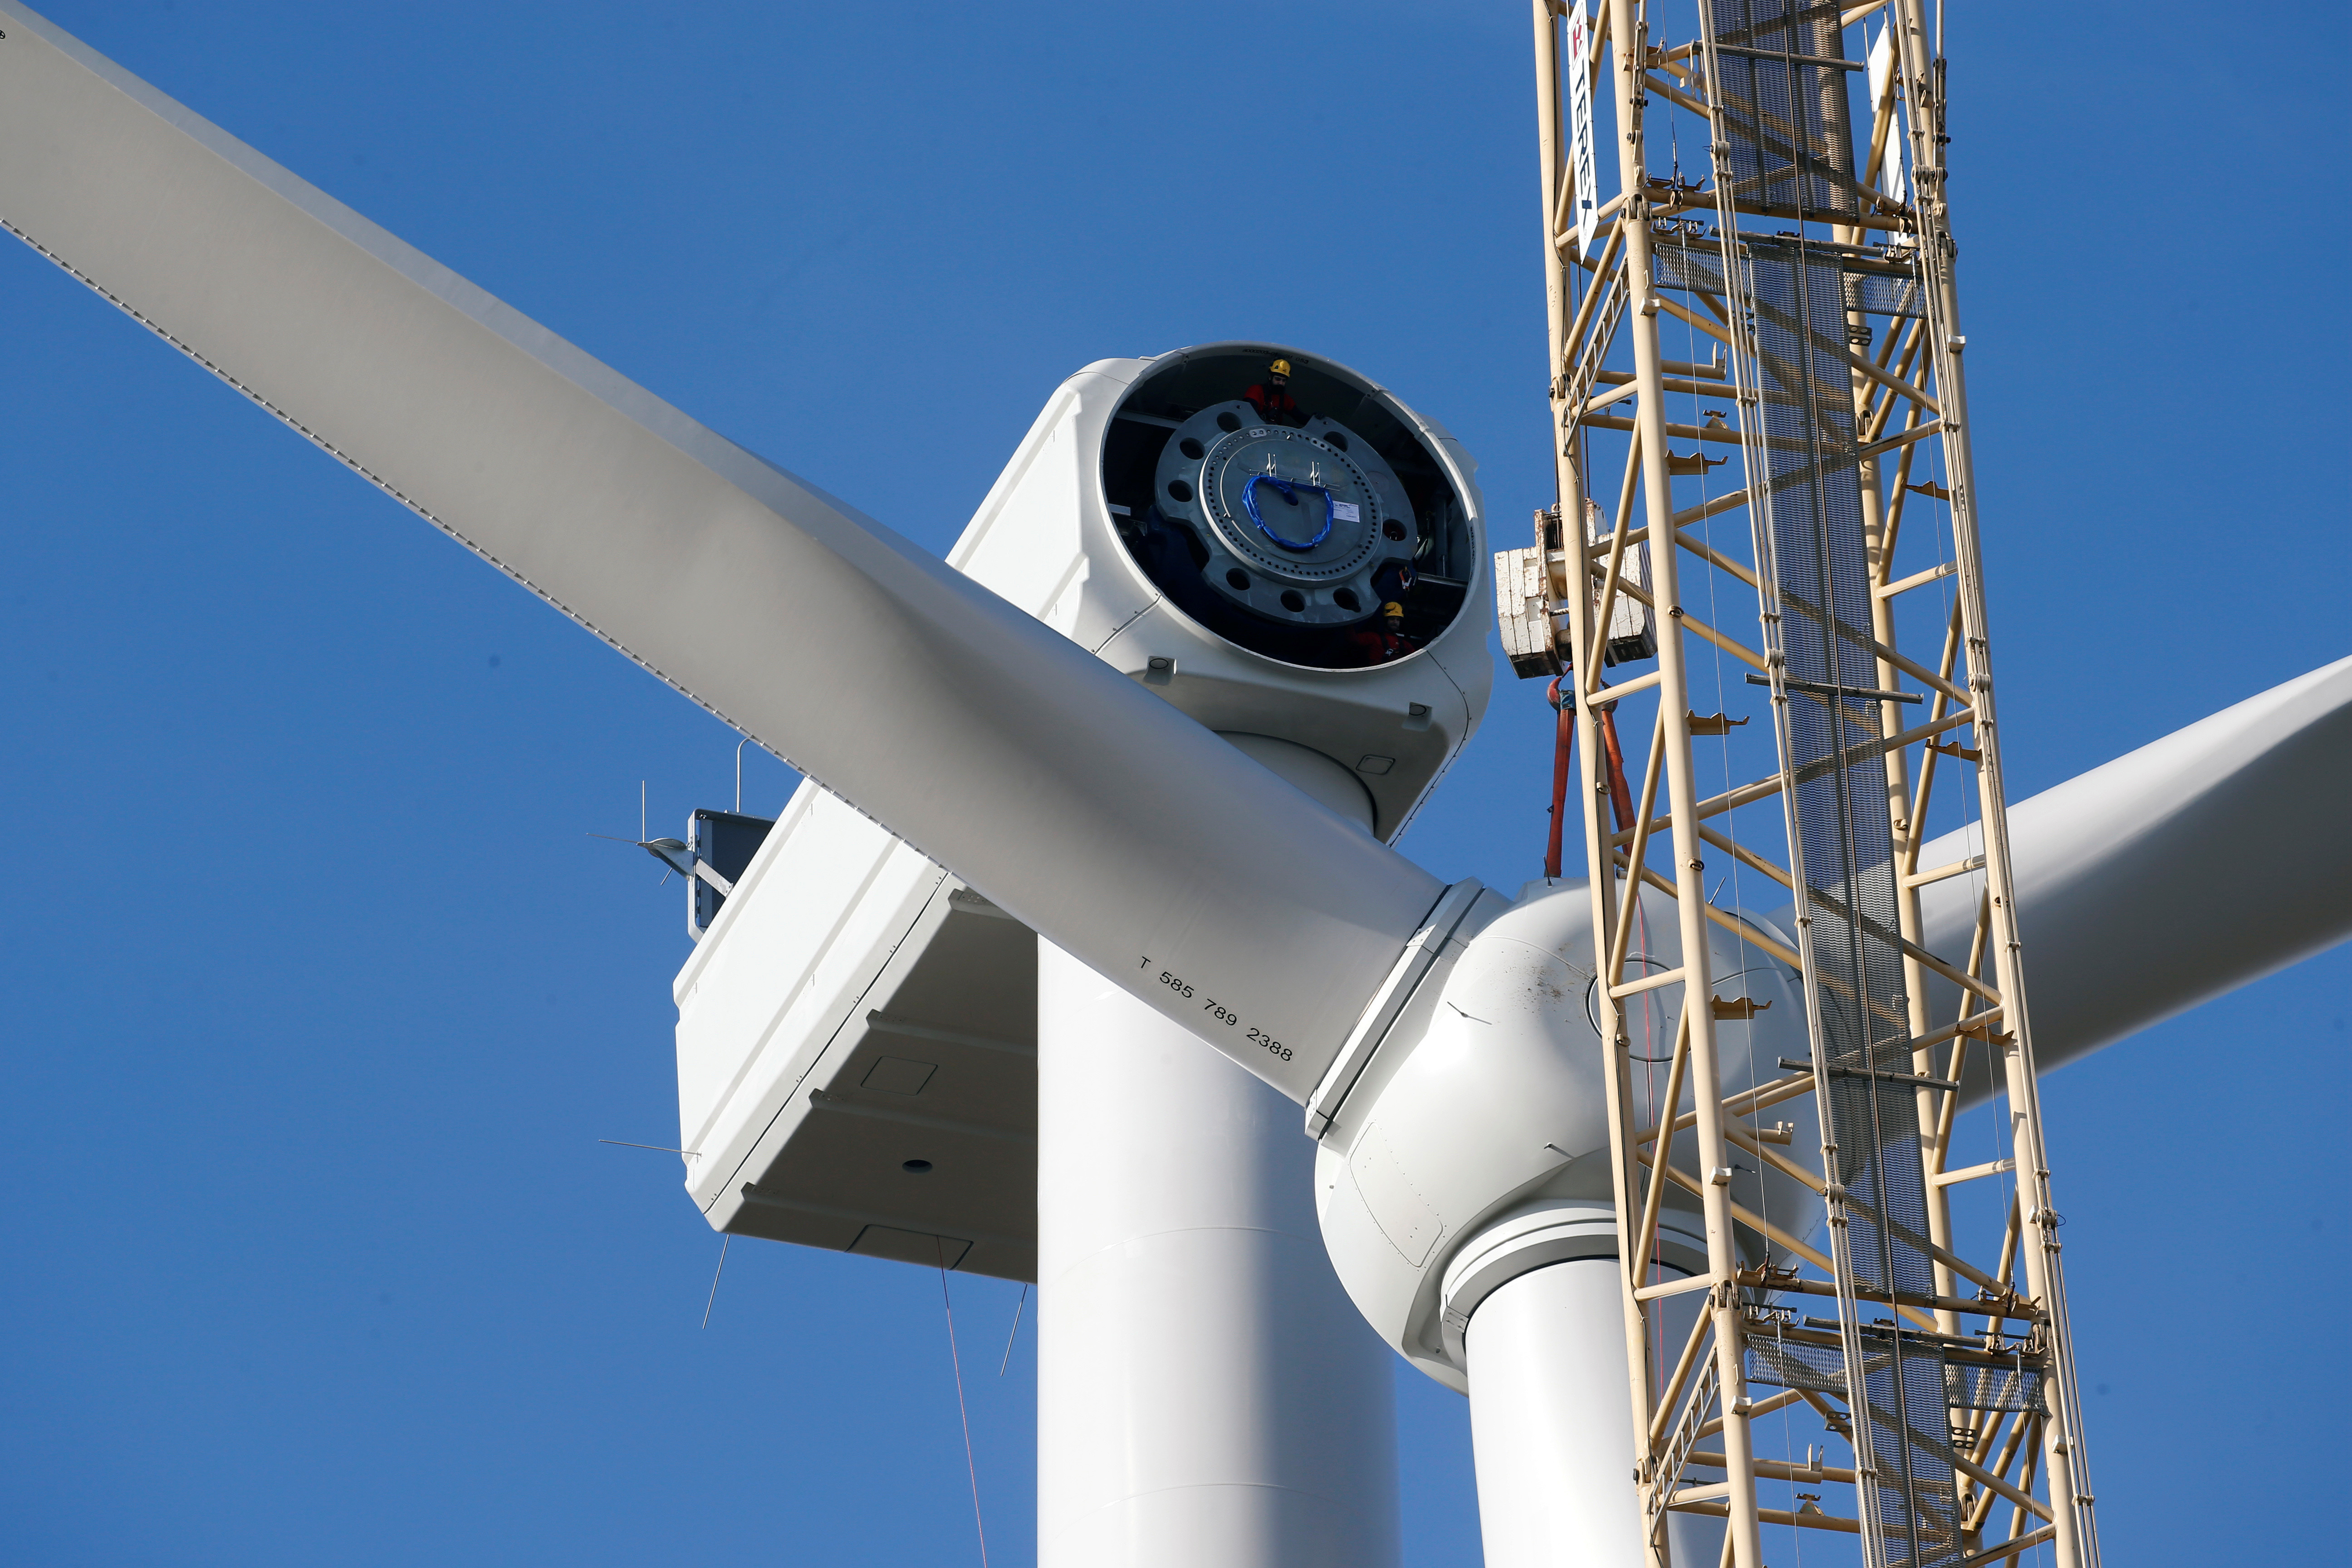 Workers are seen as a crane lifts a propeller to the top of a power-generating windmill turbine in a wind farm in Graincourt-Les-Havrincourt, France February 13, 2019.  REUTERS/Pascal Rossignol - RC1C6FA62FD0